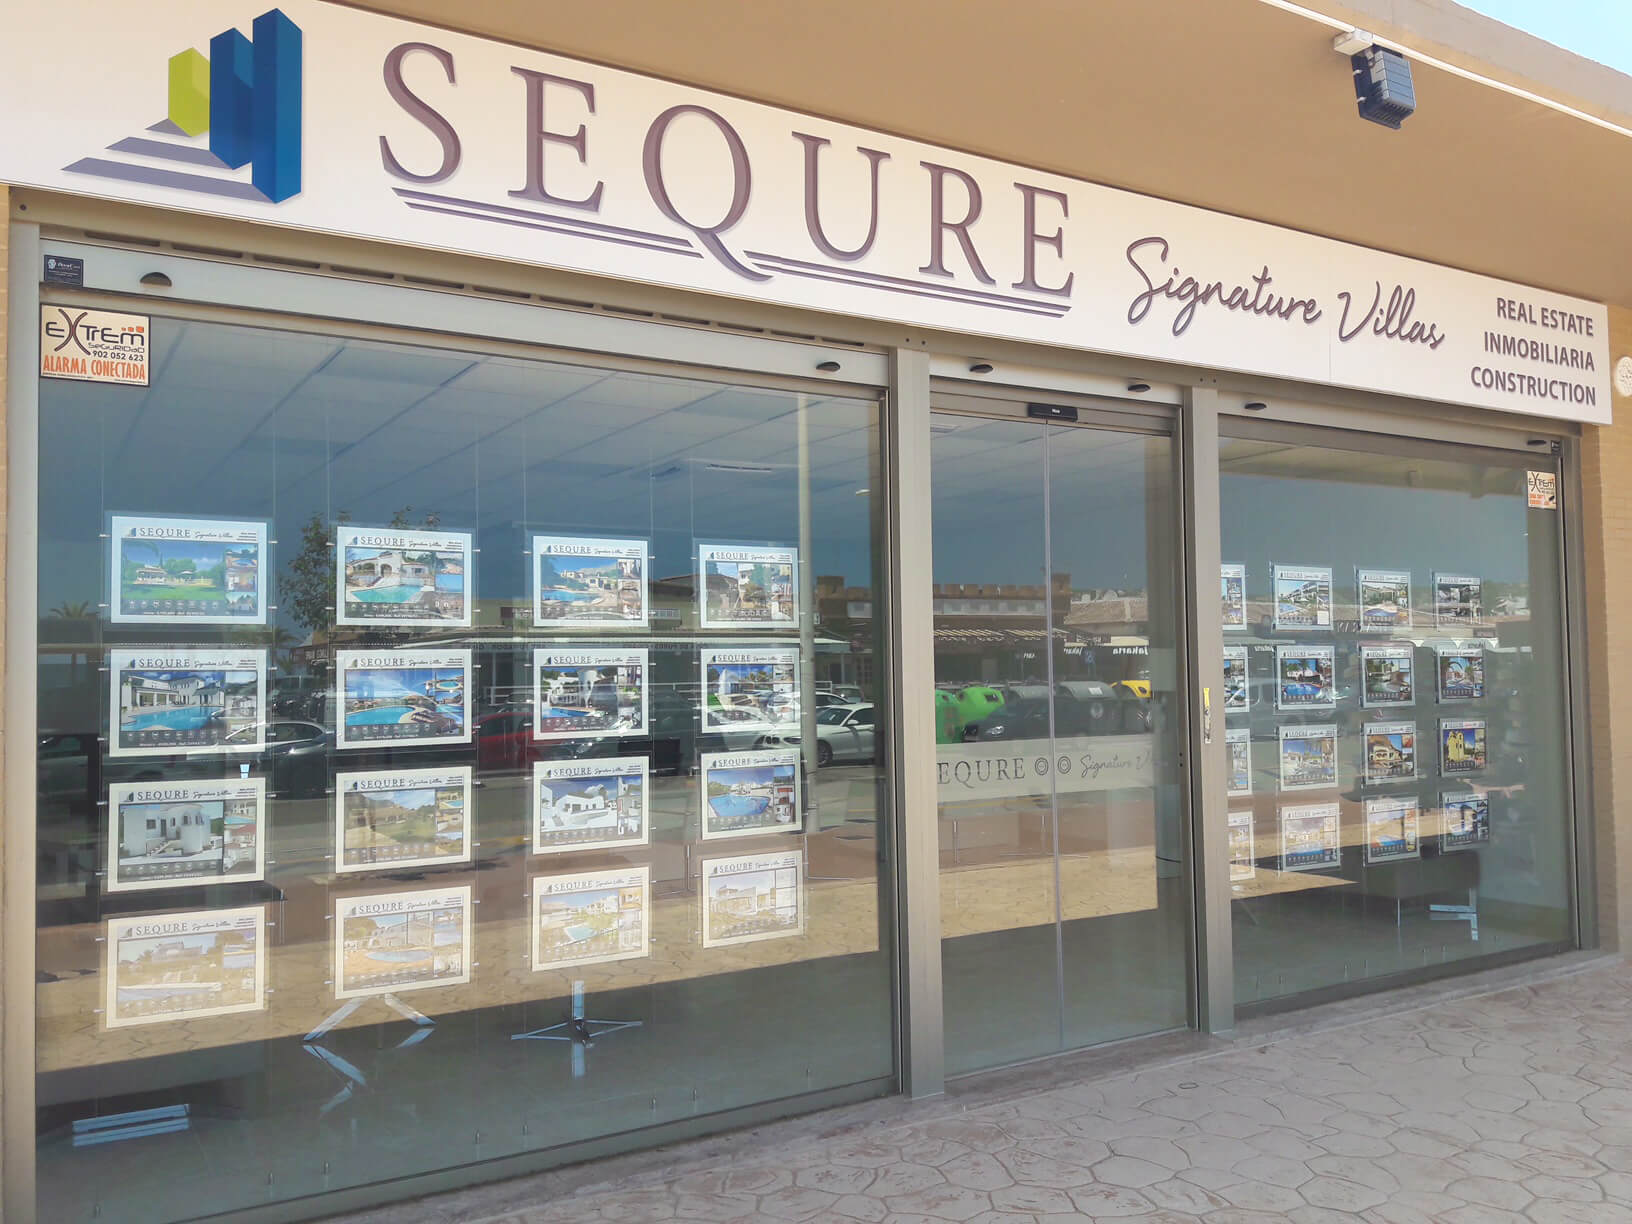 outside costa blanca north office. A window display of properties and villlas in the costa blanca north